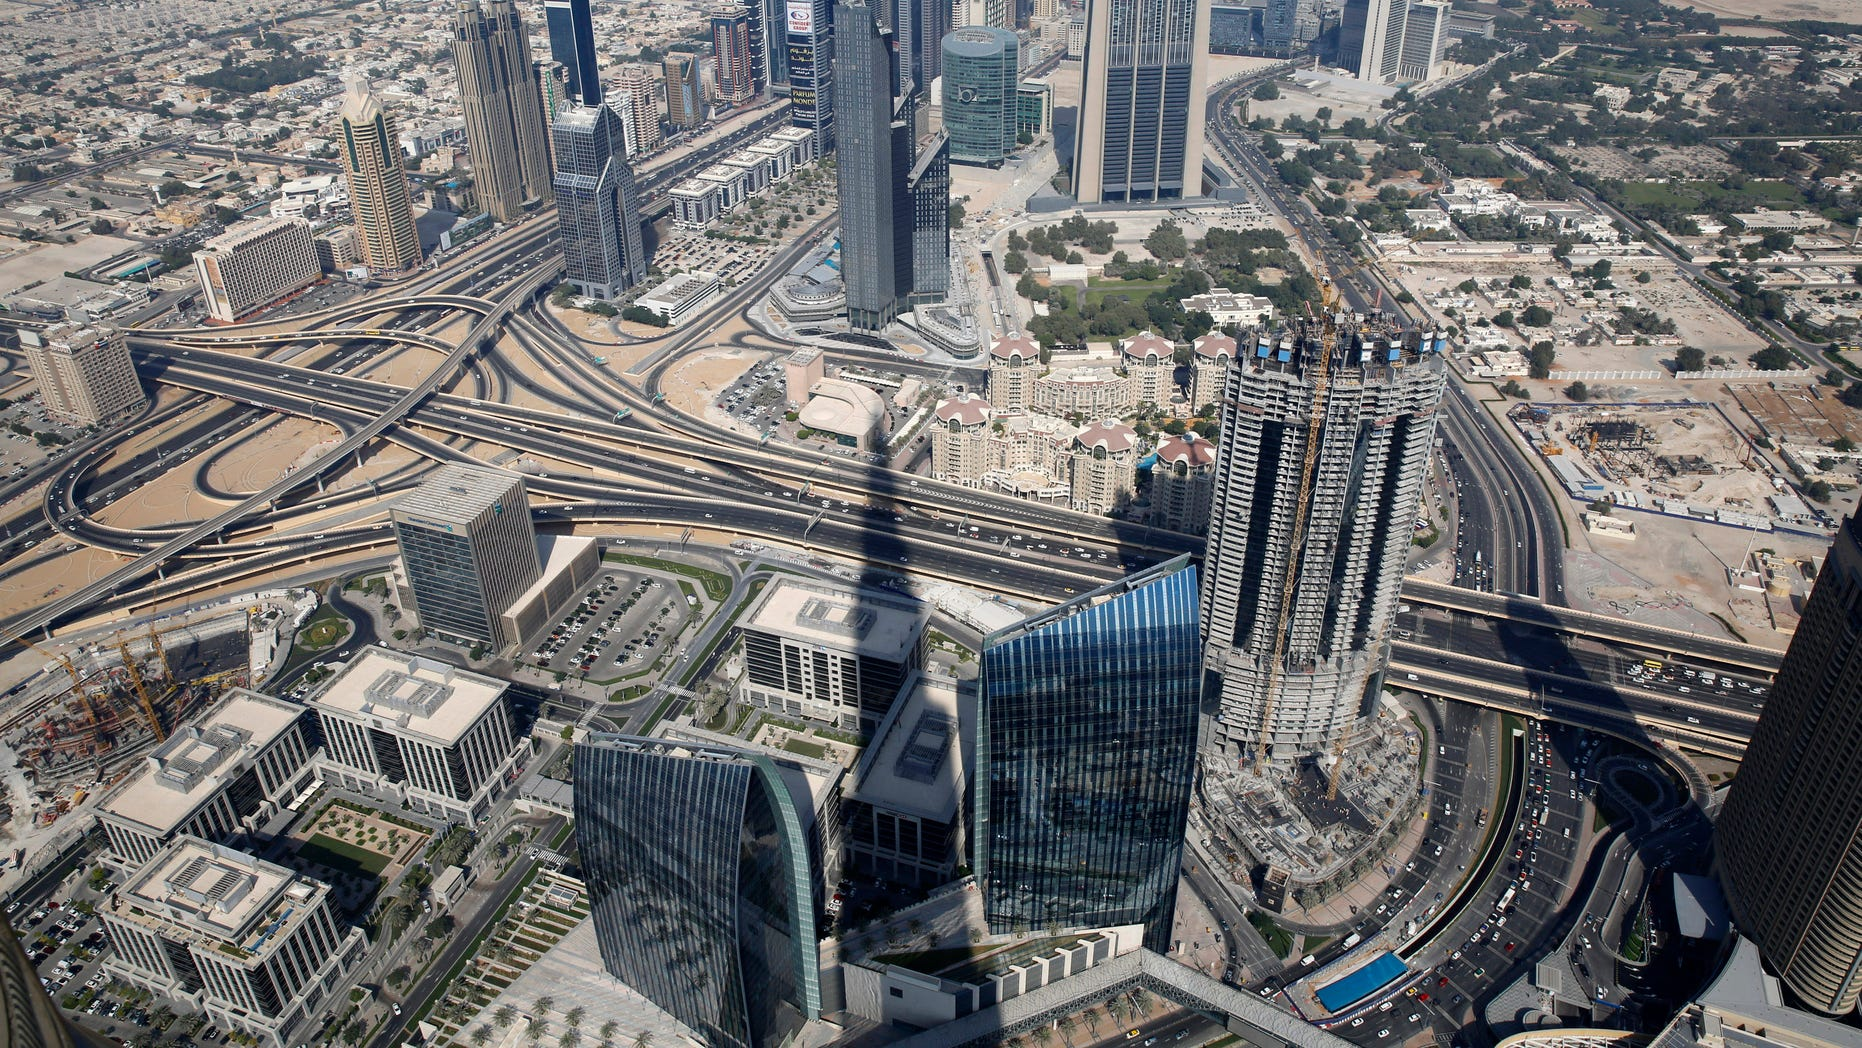 An aerial view of Dubai from Burj Khalifa, the tallest building in the world, in Dubai.